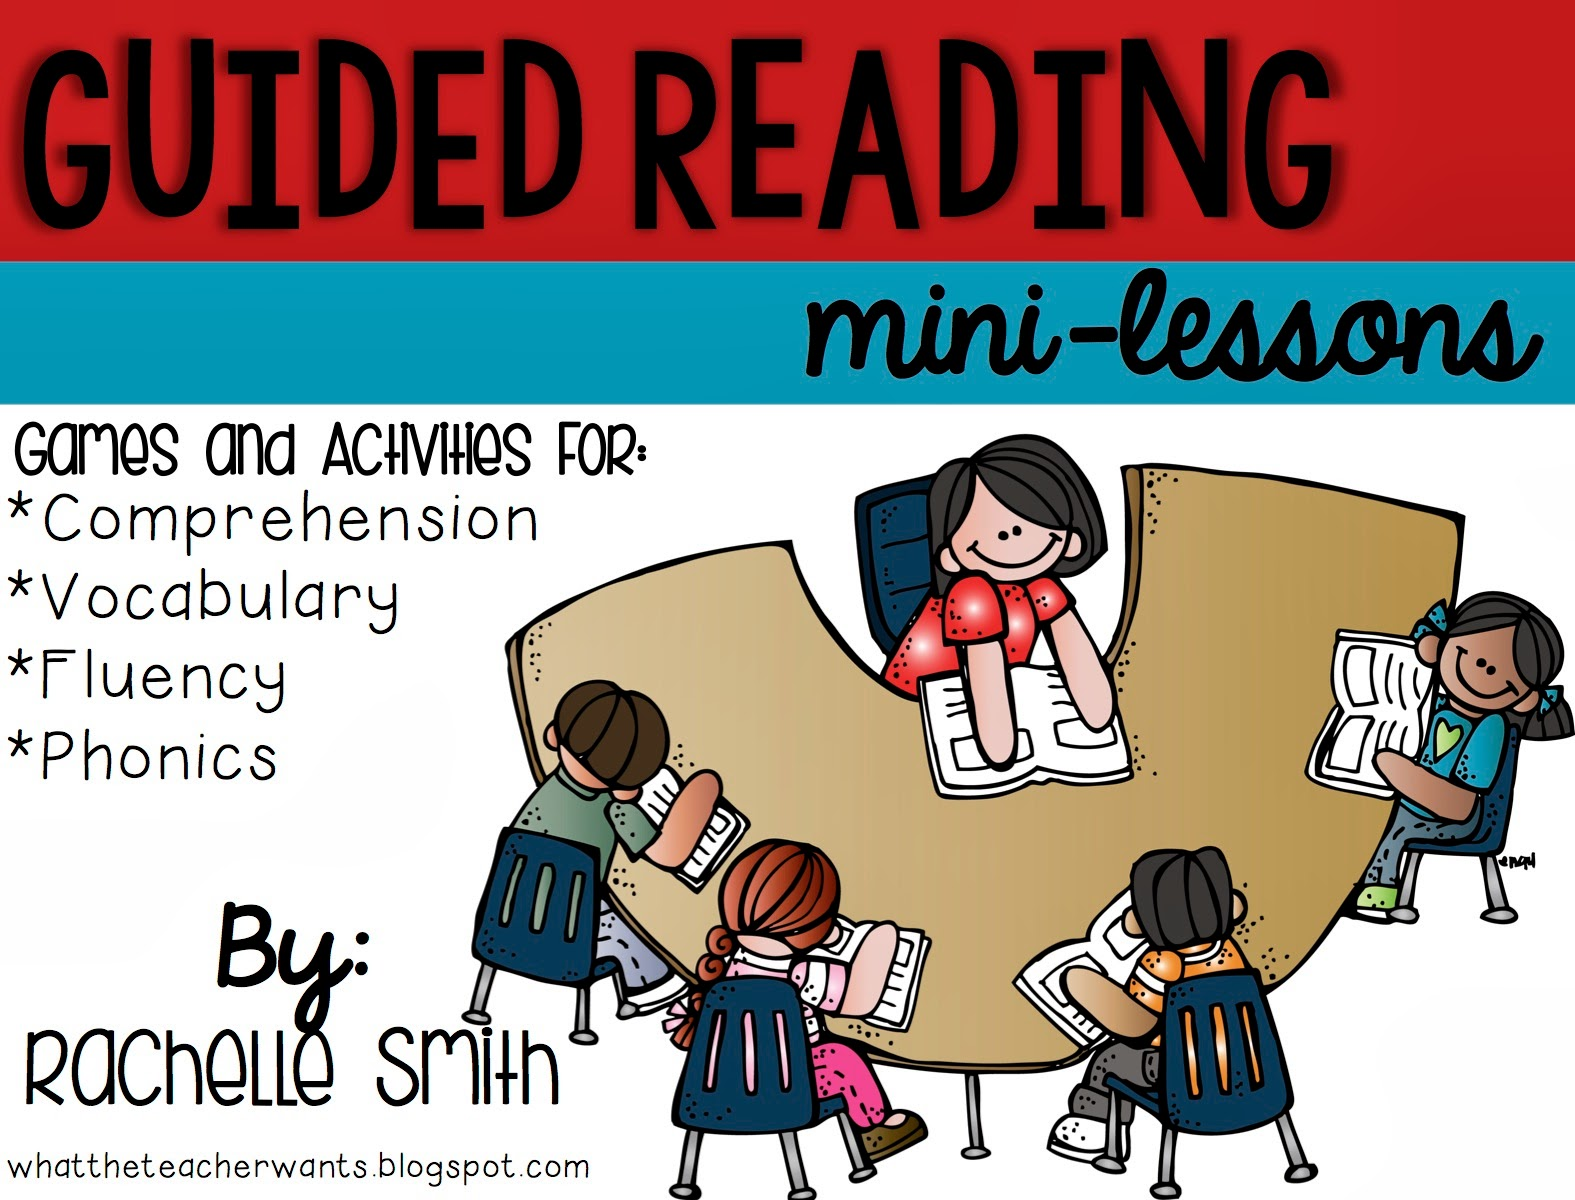 http://www.teacherspayteachers.com/Product/Guided-Reading-Mini-Lessons-Activities-Resources-and-Games-1140362